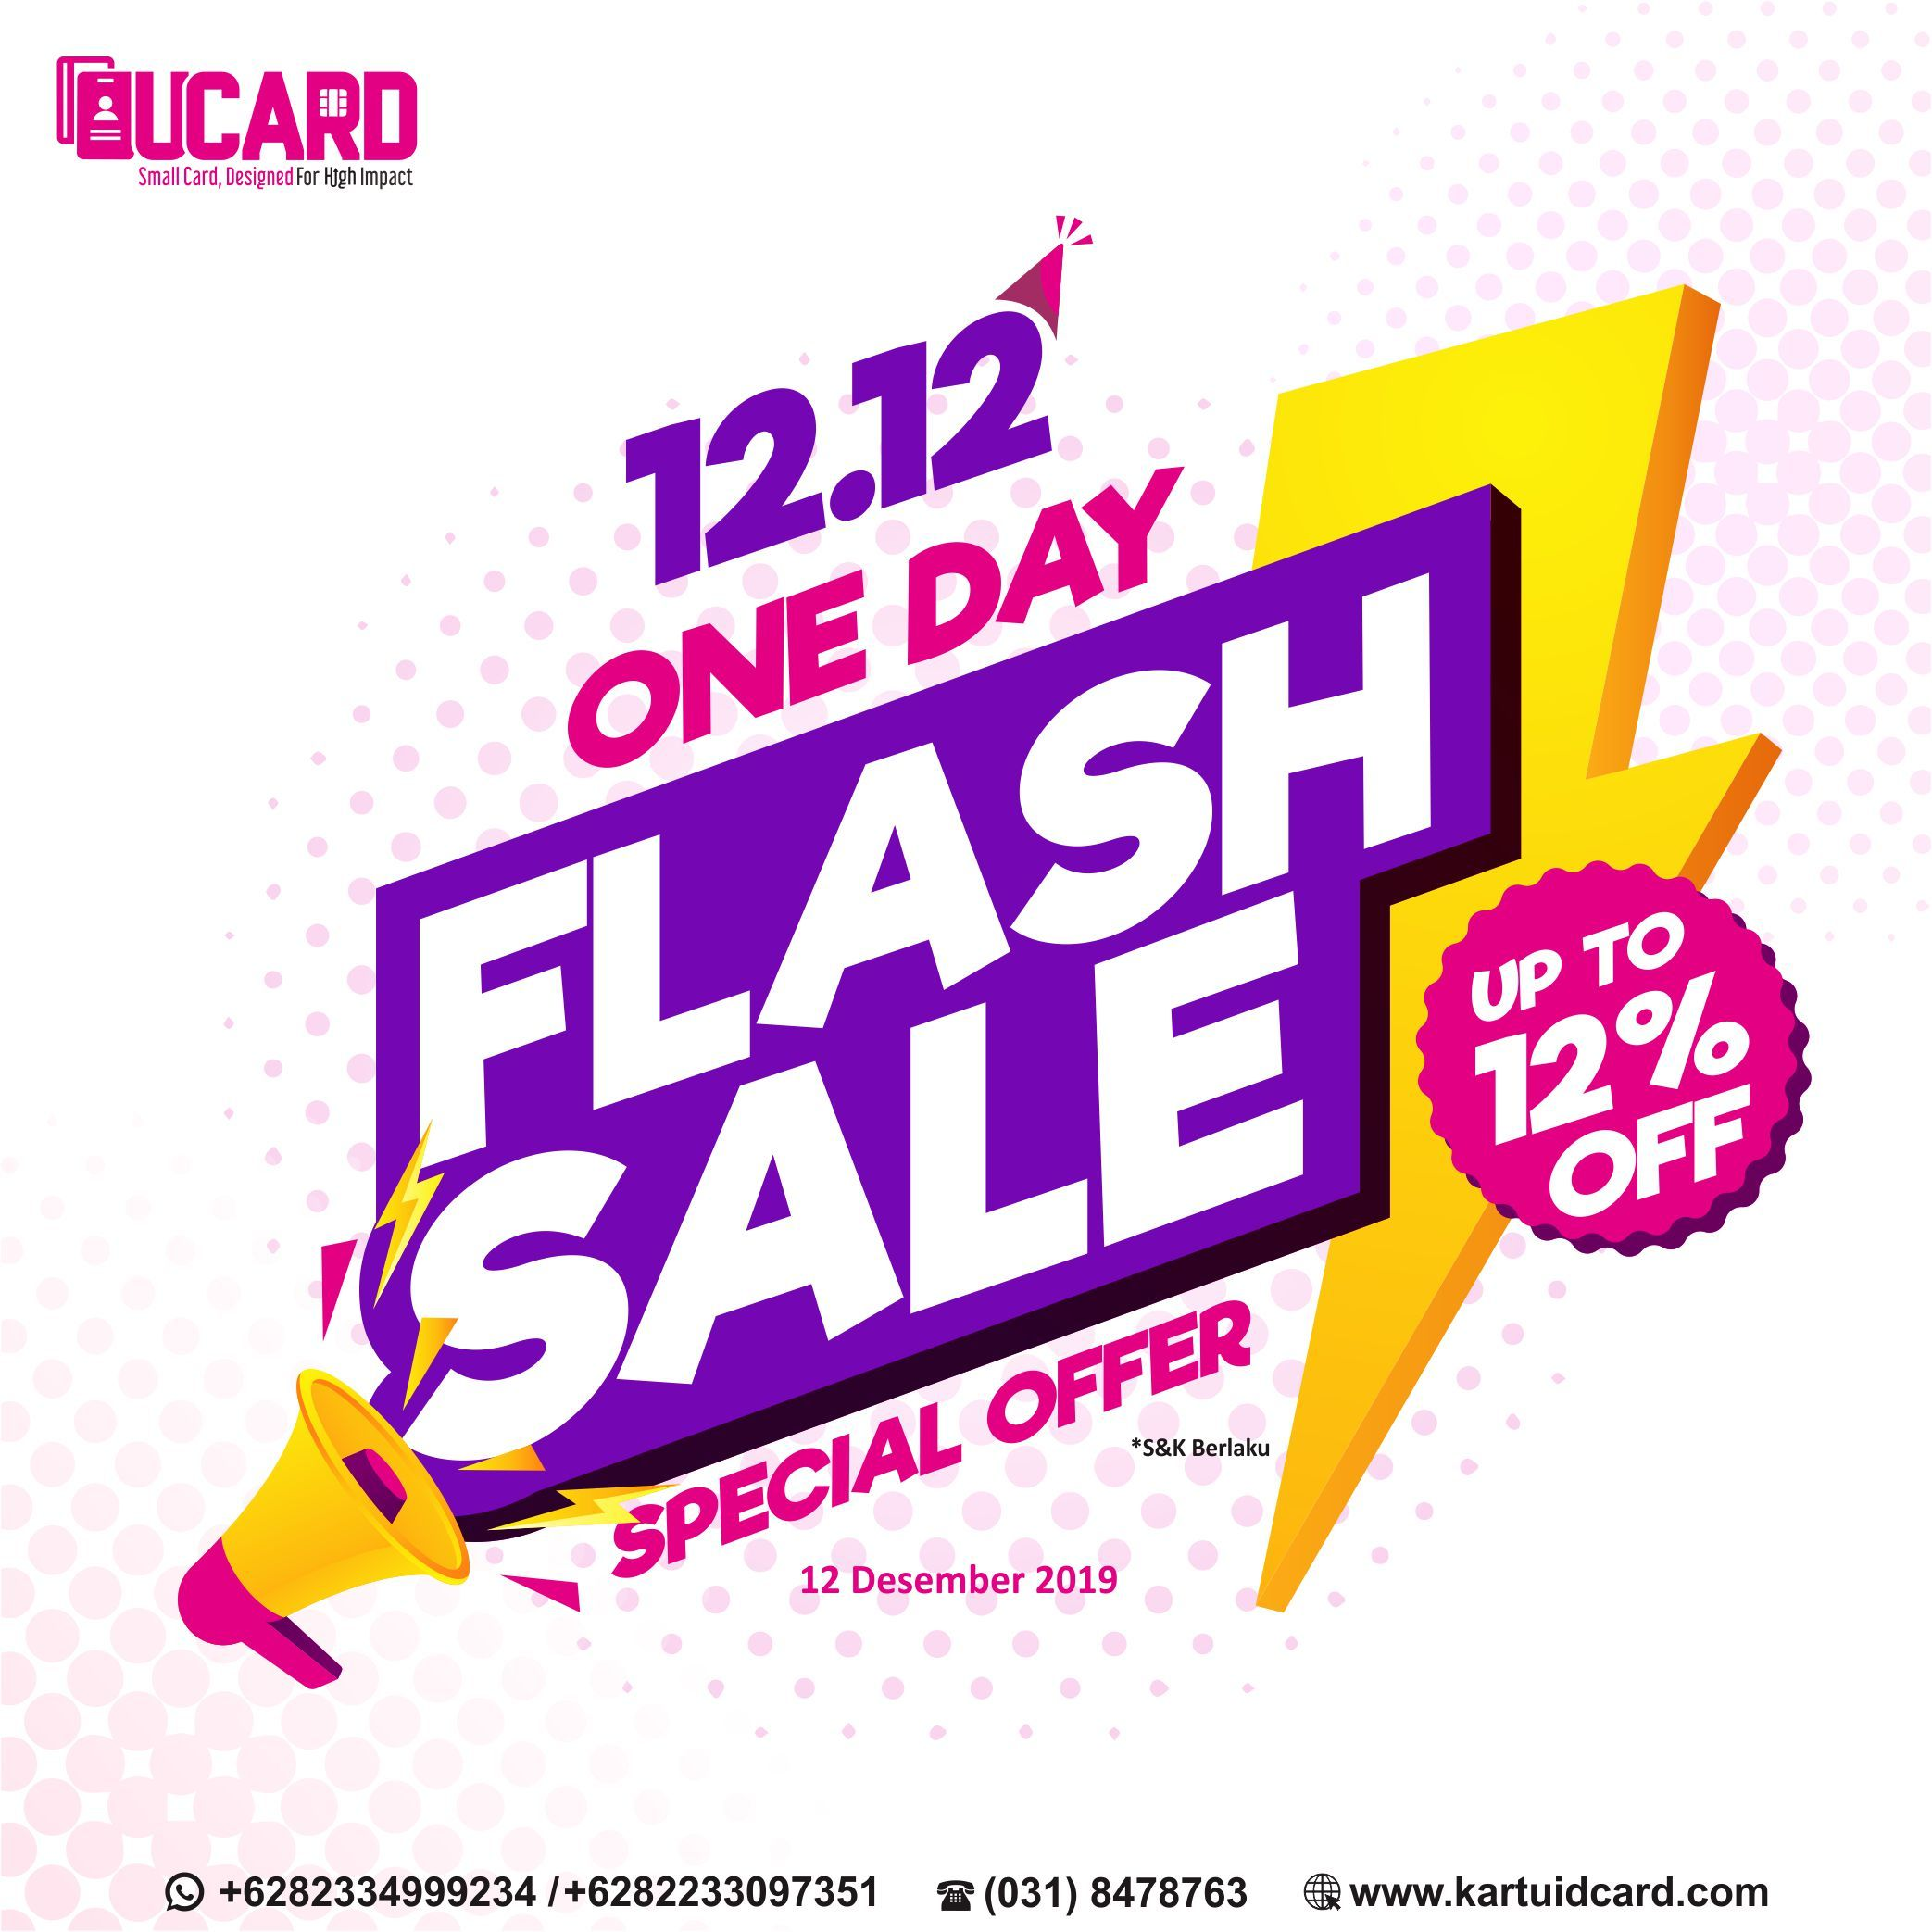 UCard 12.12 One Day Flash Sale Up to 12%